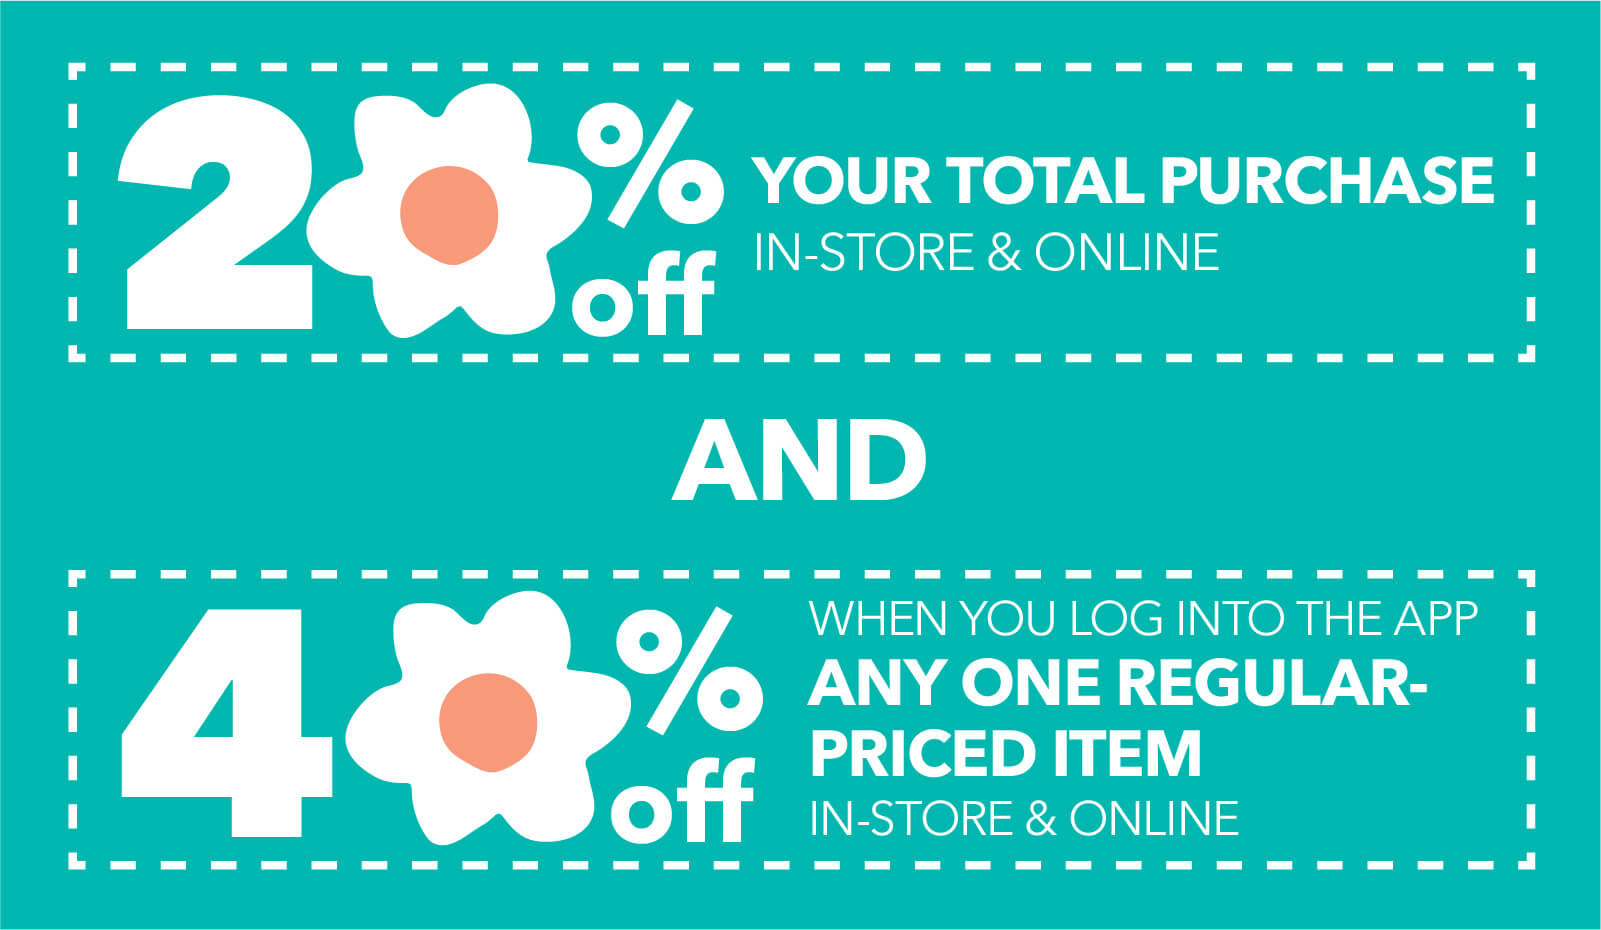 20% off your total purchase. Log in to the app to save 40% off any one regular priced item in-store & online